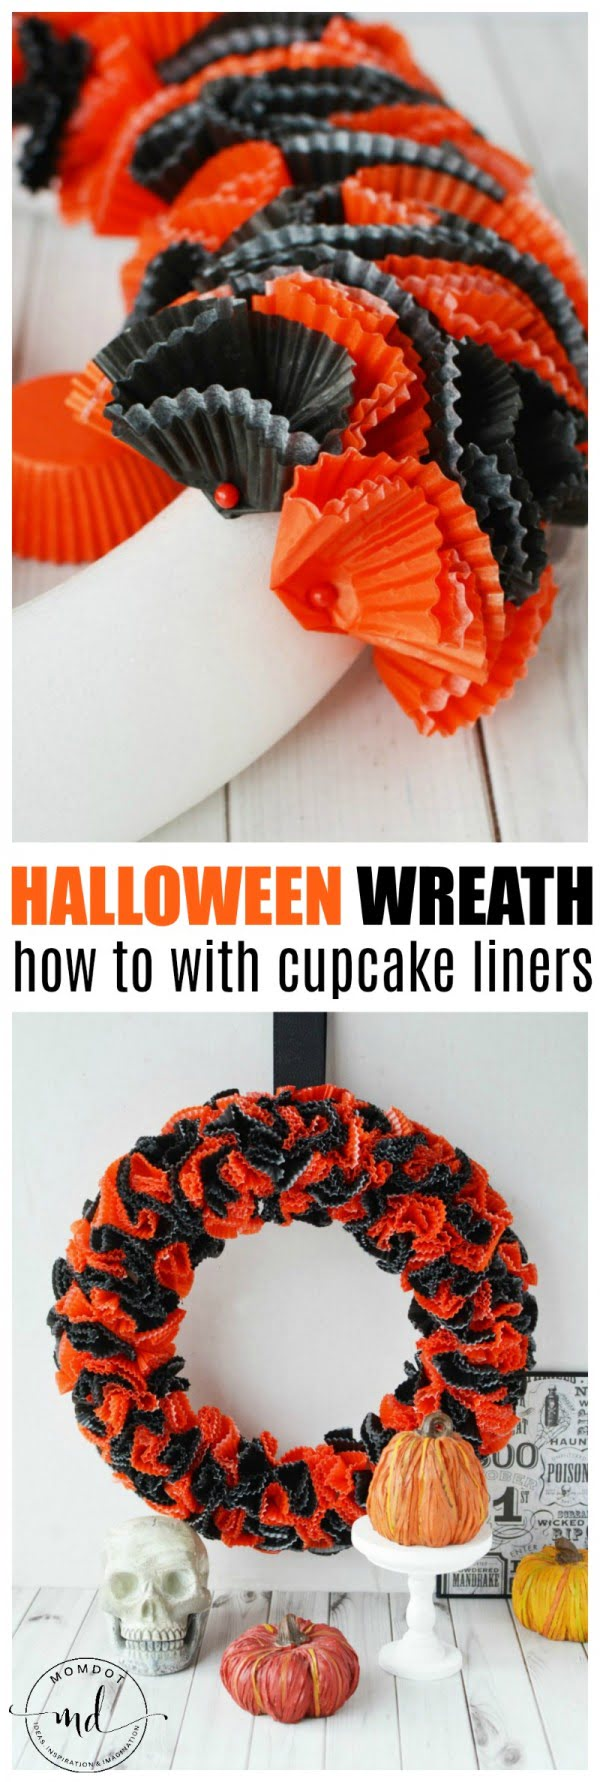 Check out the tutorial on how to make a DIY halloween wreath from cupcake liners